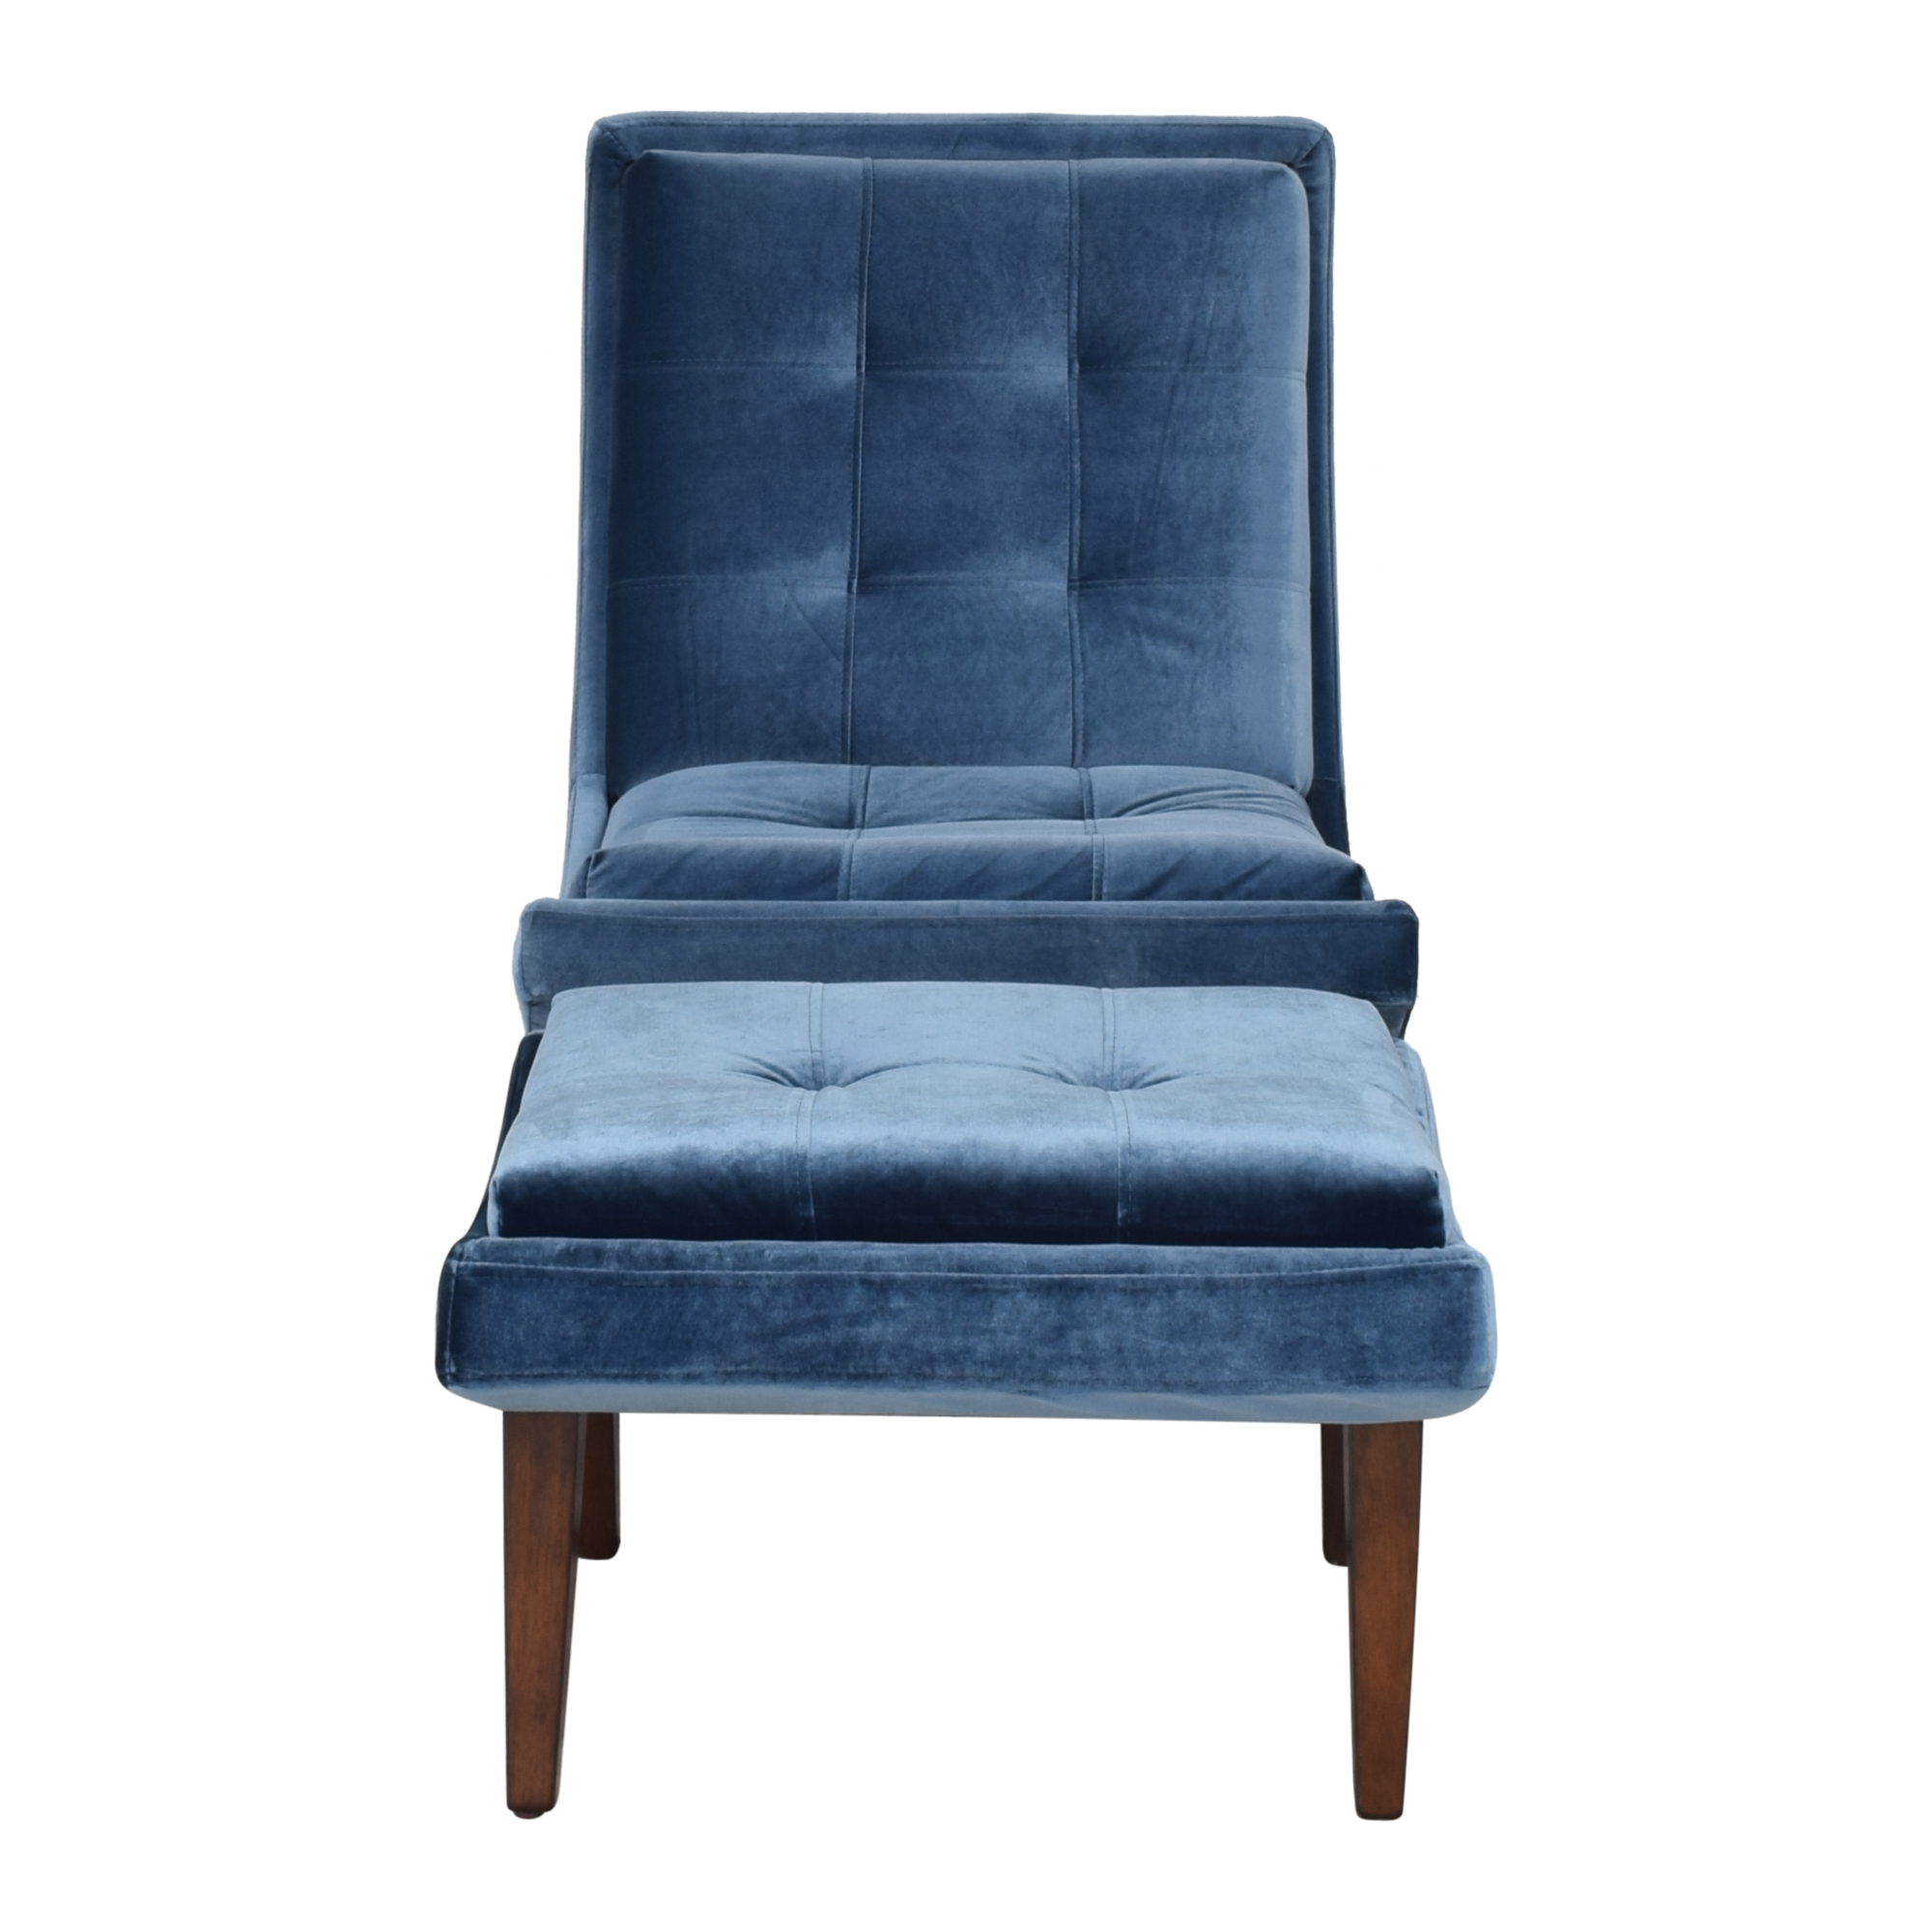 shop Modway Modway Lounge Chair and Ottoman online